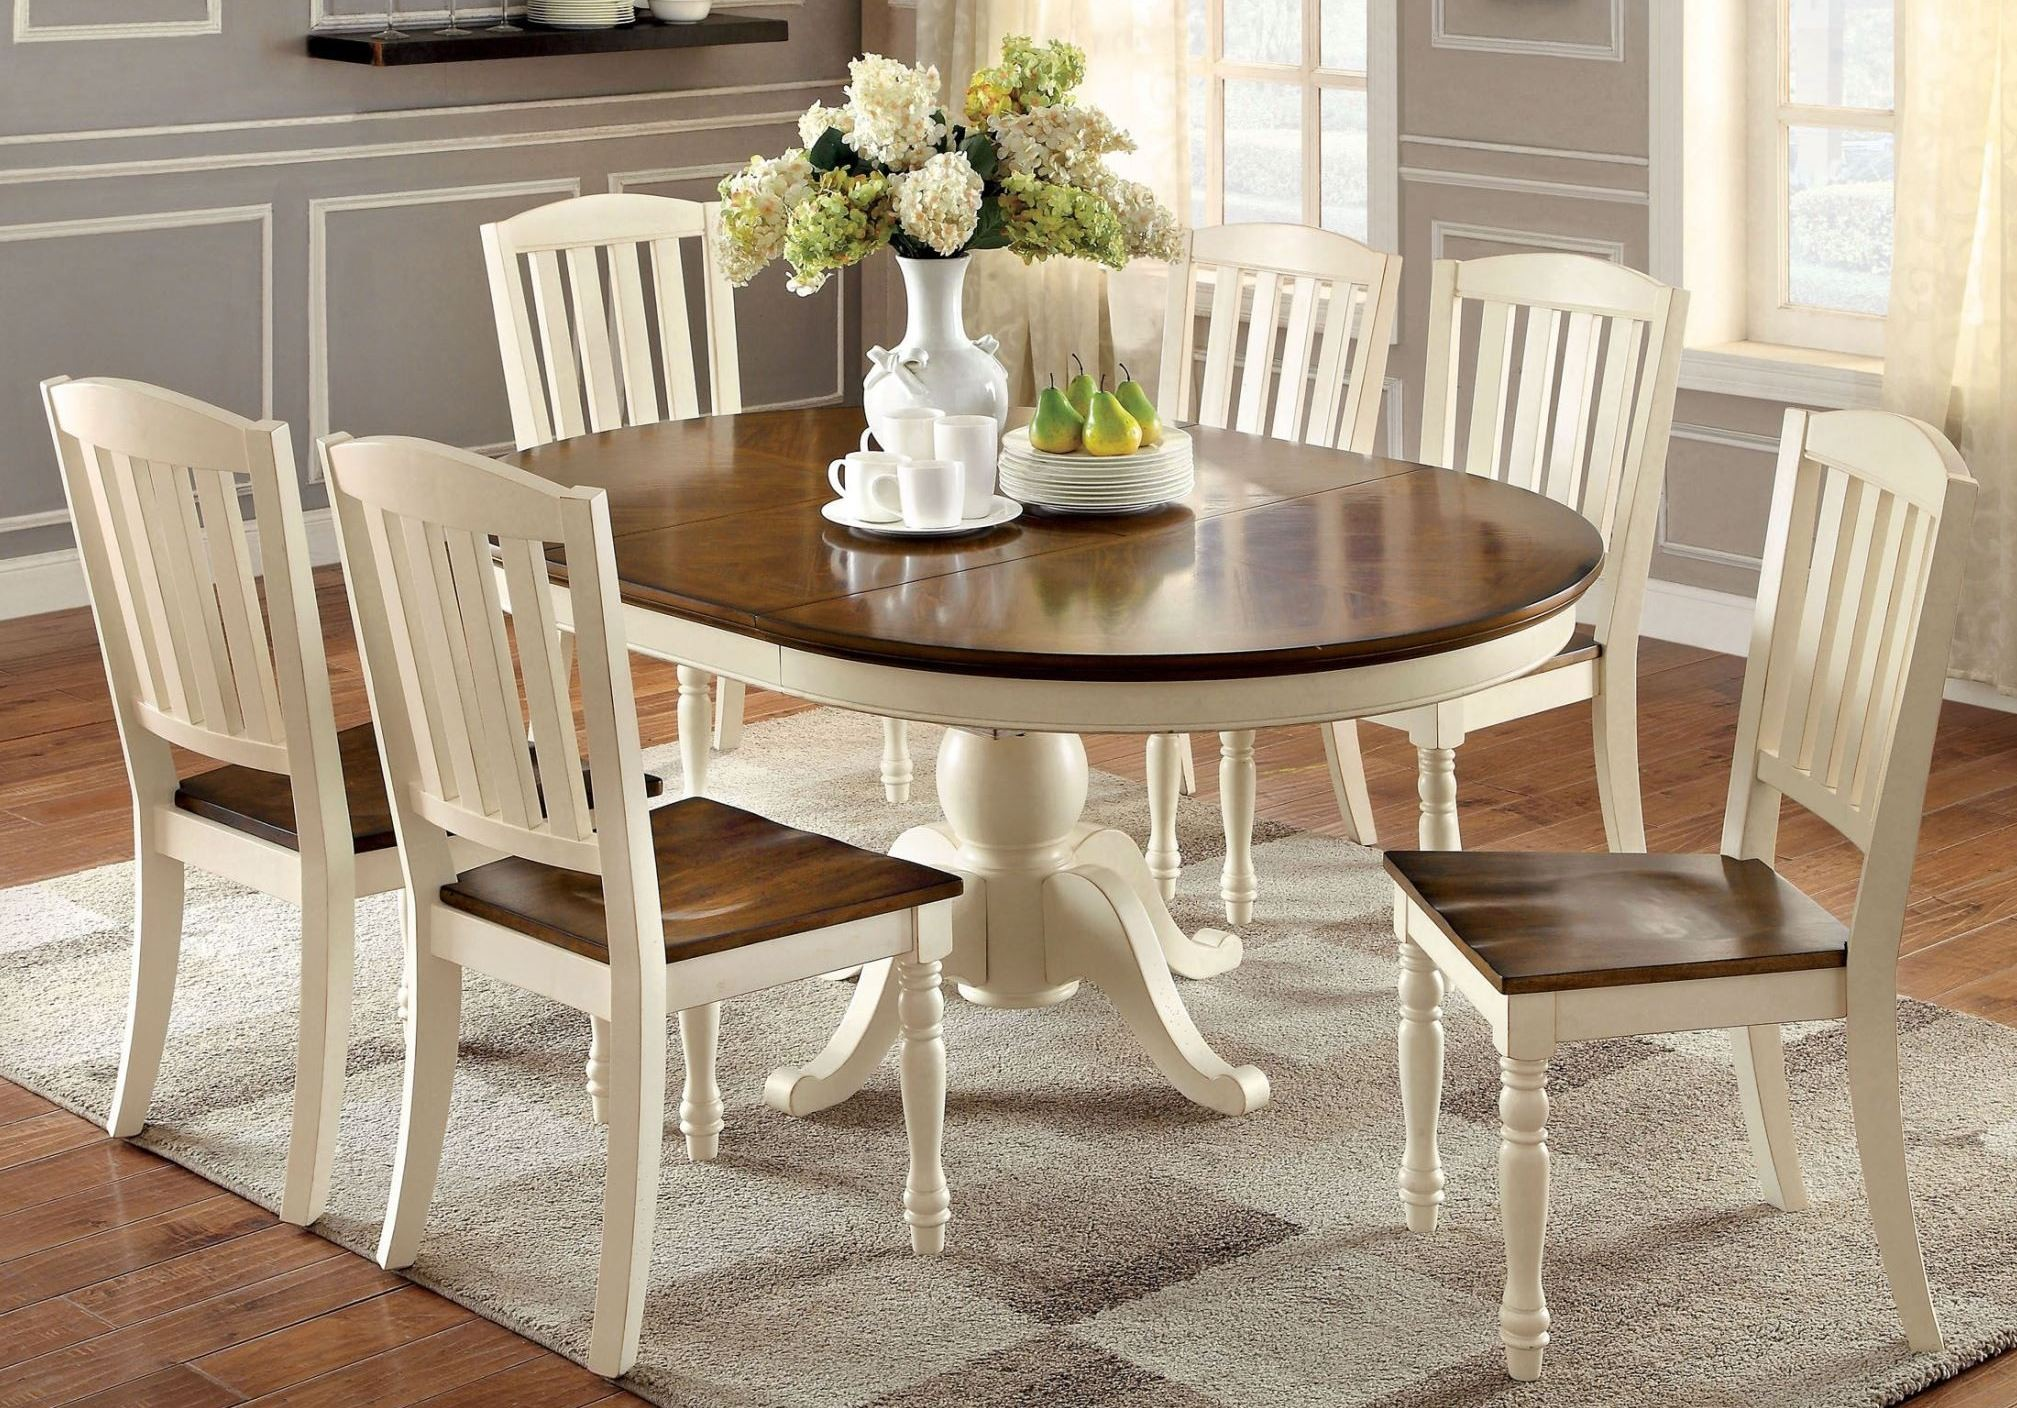 White oval dining